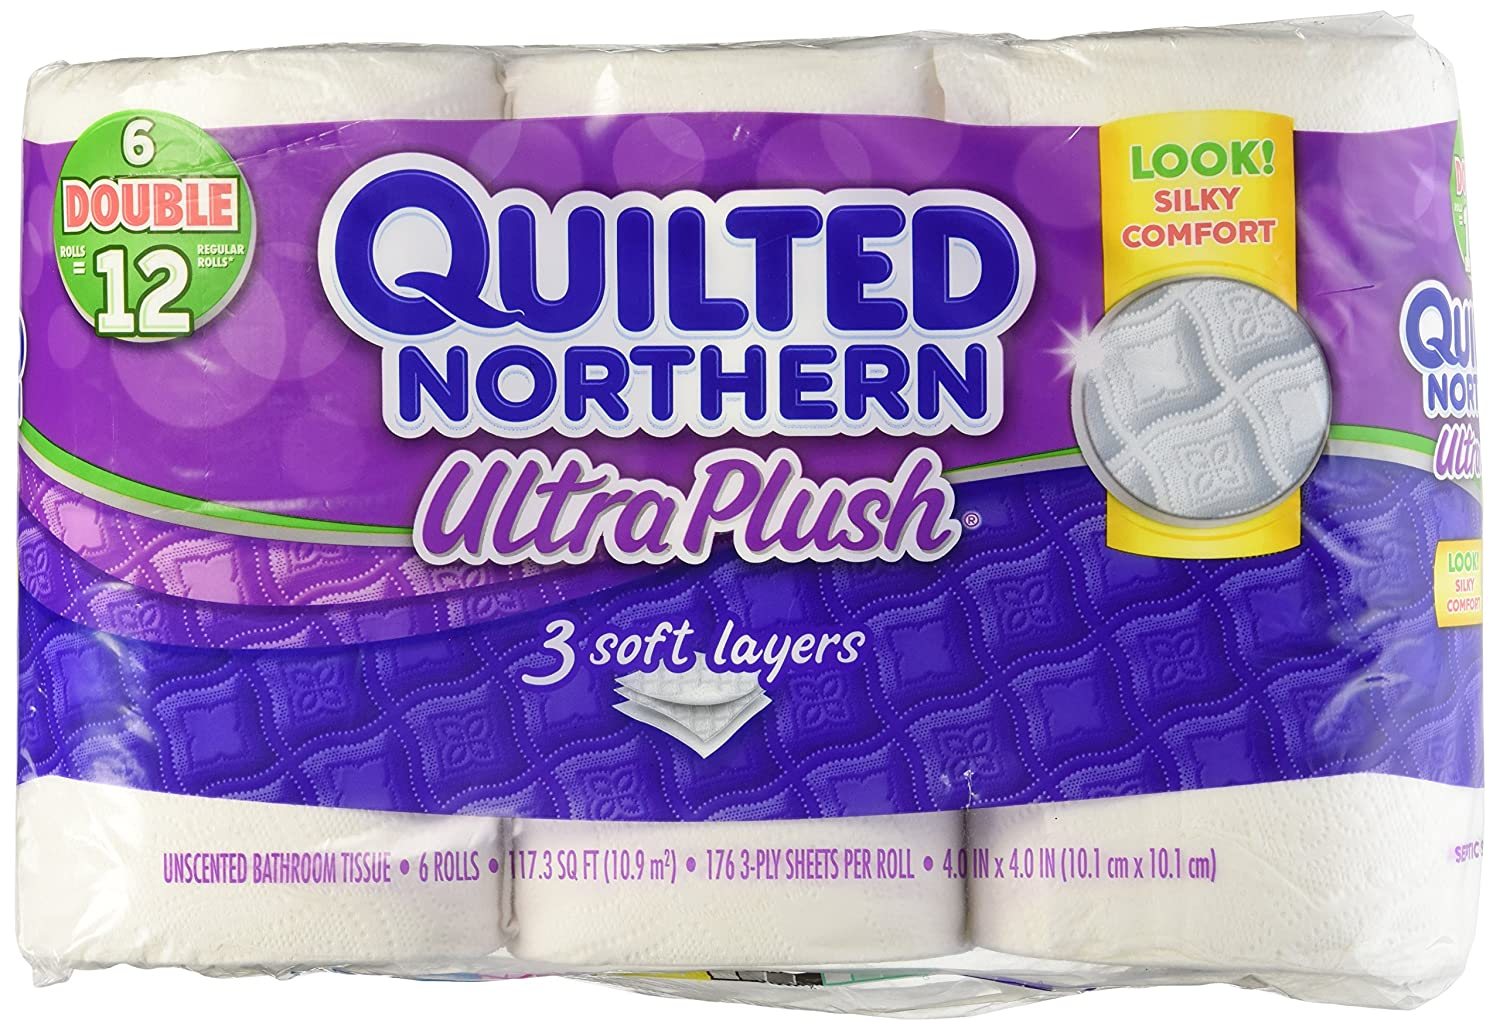 dp com amazon ultra plush outdoors quilt rolls double northern sports tissue bath quilted